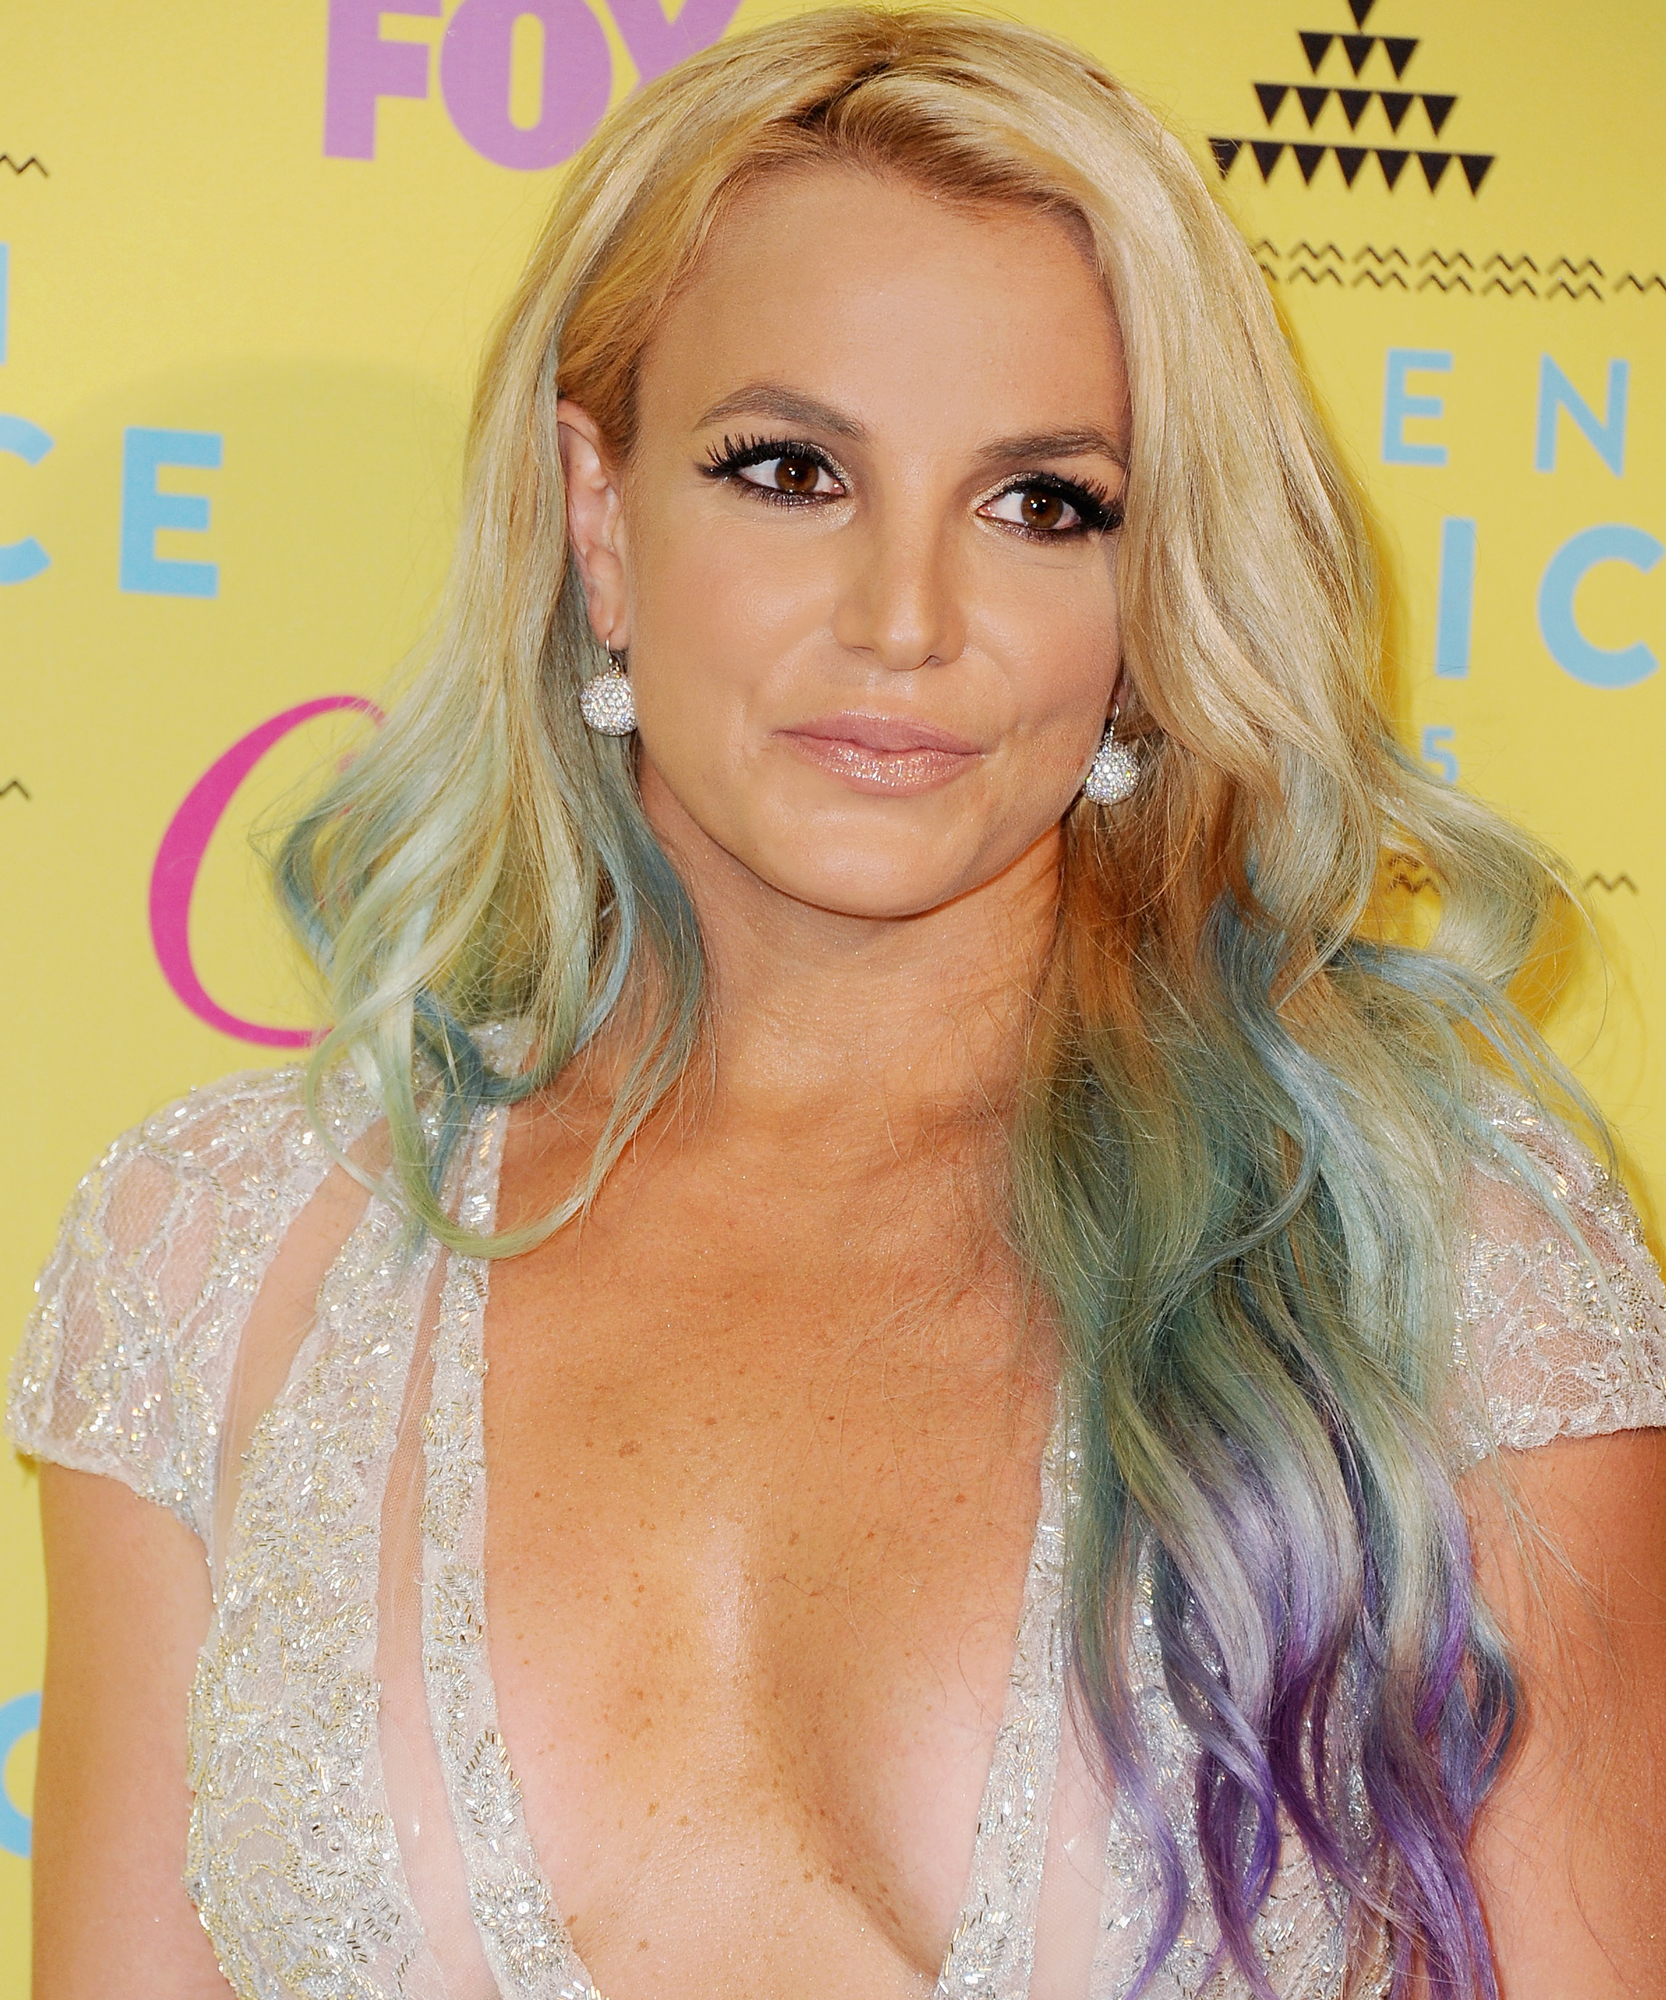 """Britney Spears Shows Off Her """"Favorite"""" New Swimsuit in Smoking Hot Selfie"""